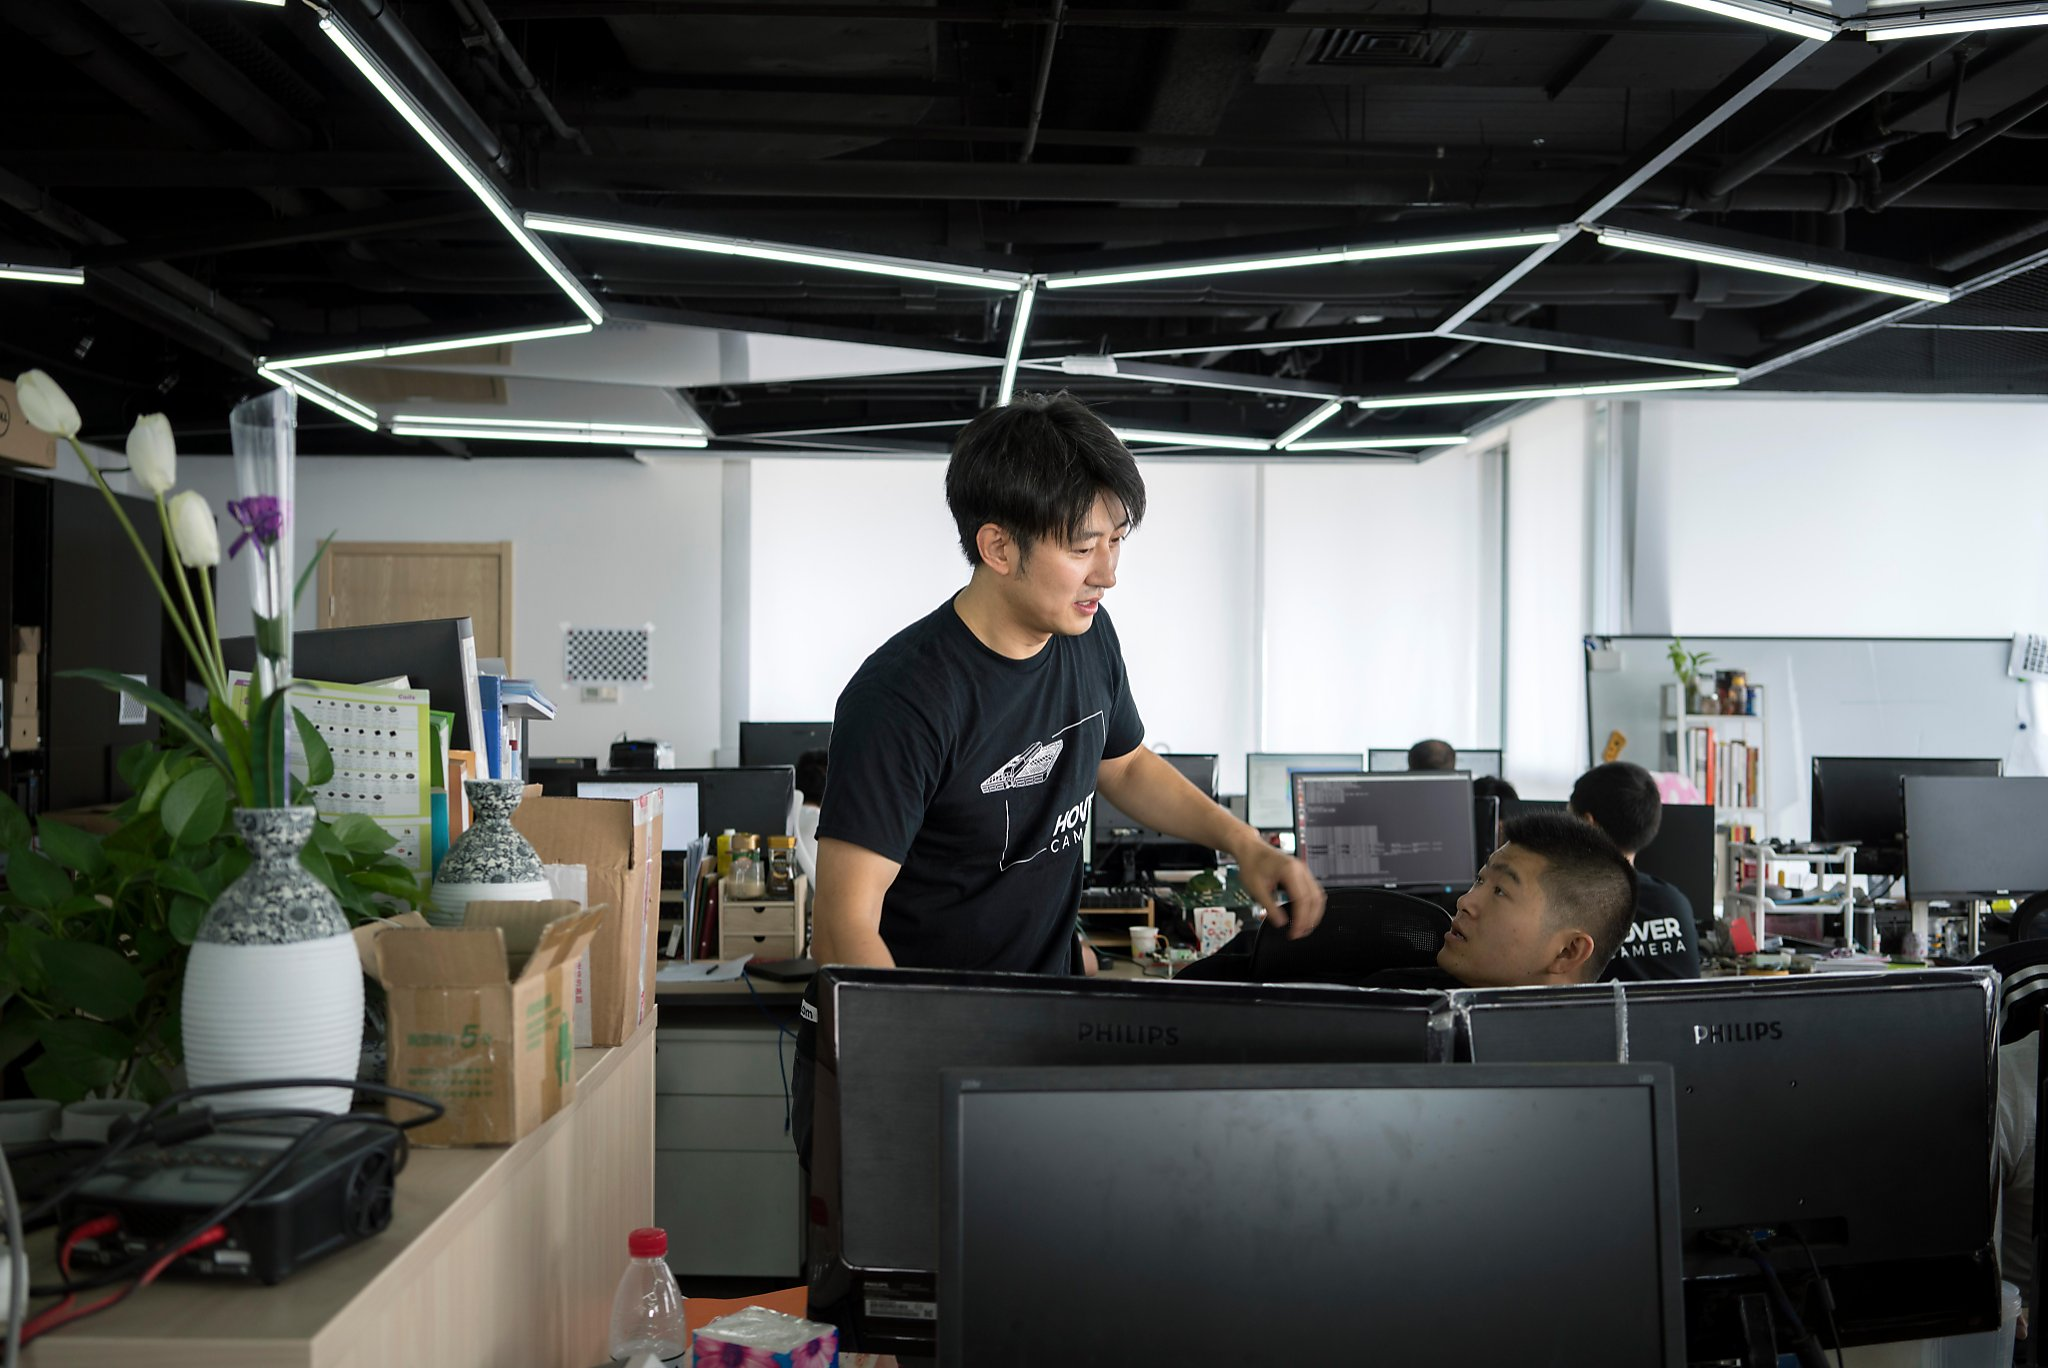 Some Startups Find The American Dream In China Group Shop Cheap From Suppliers At Alwaysbetter On